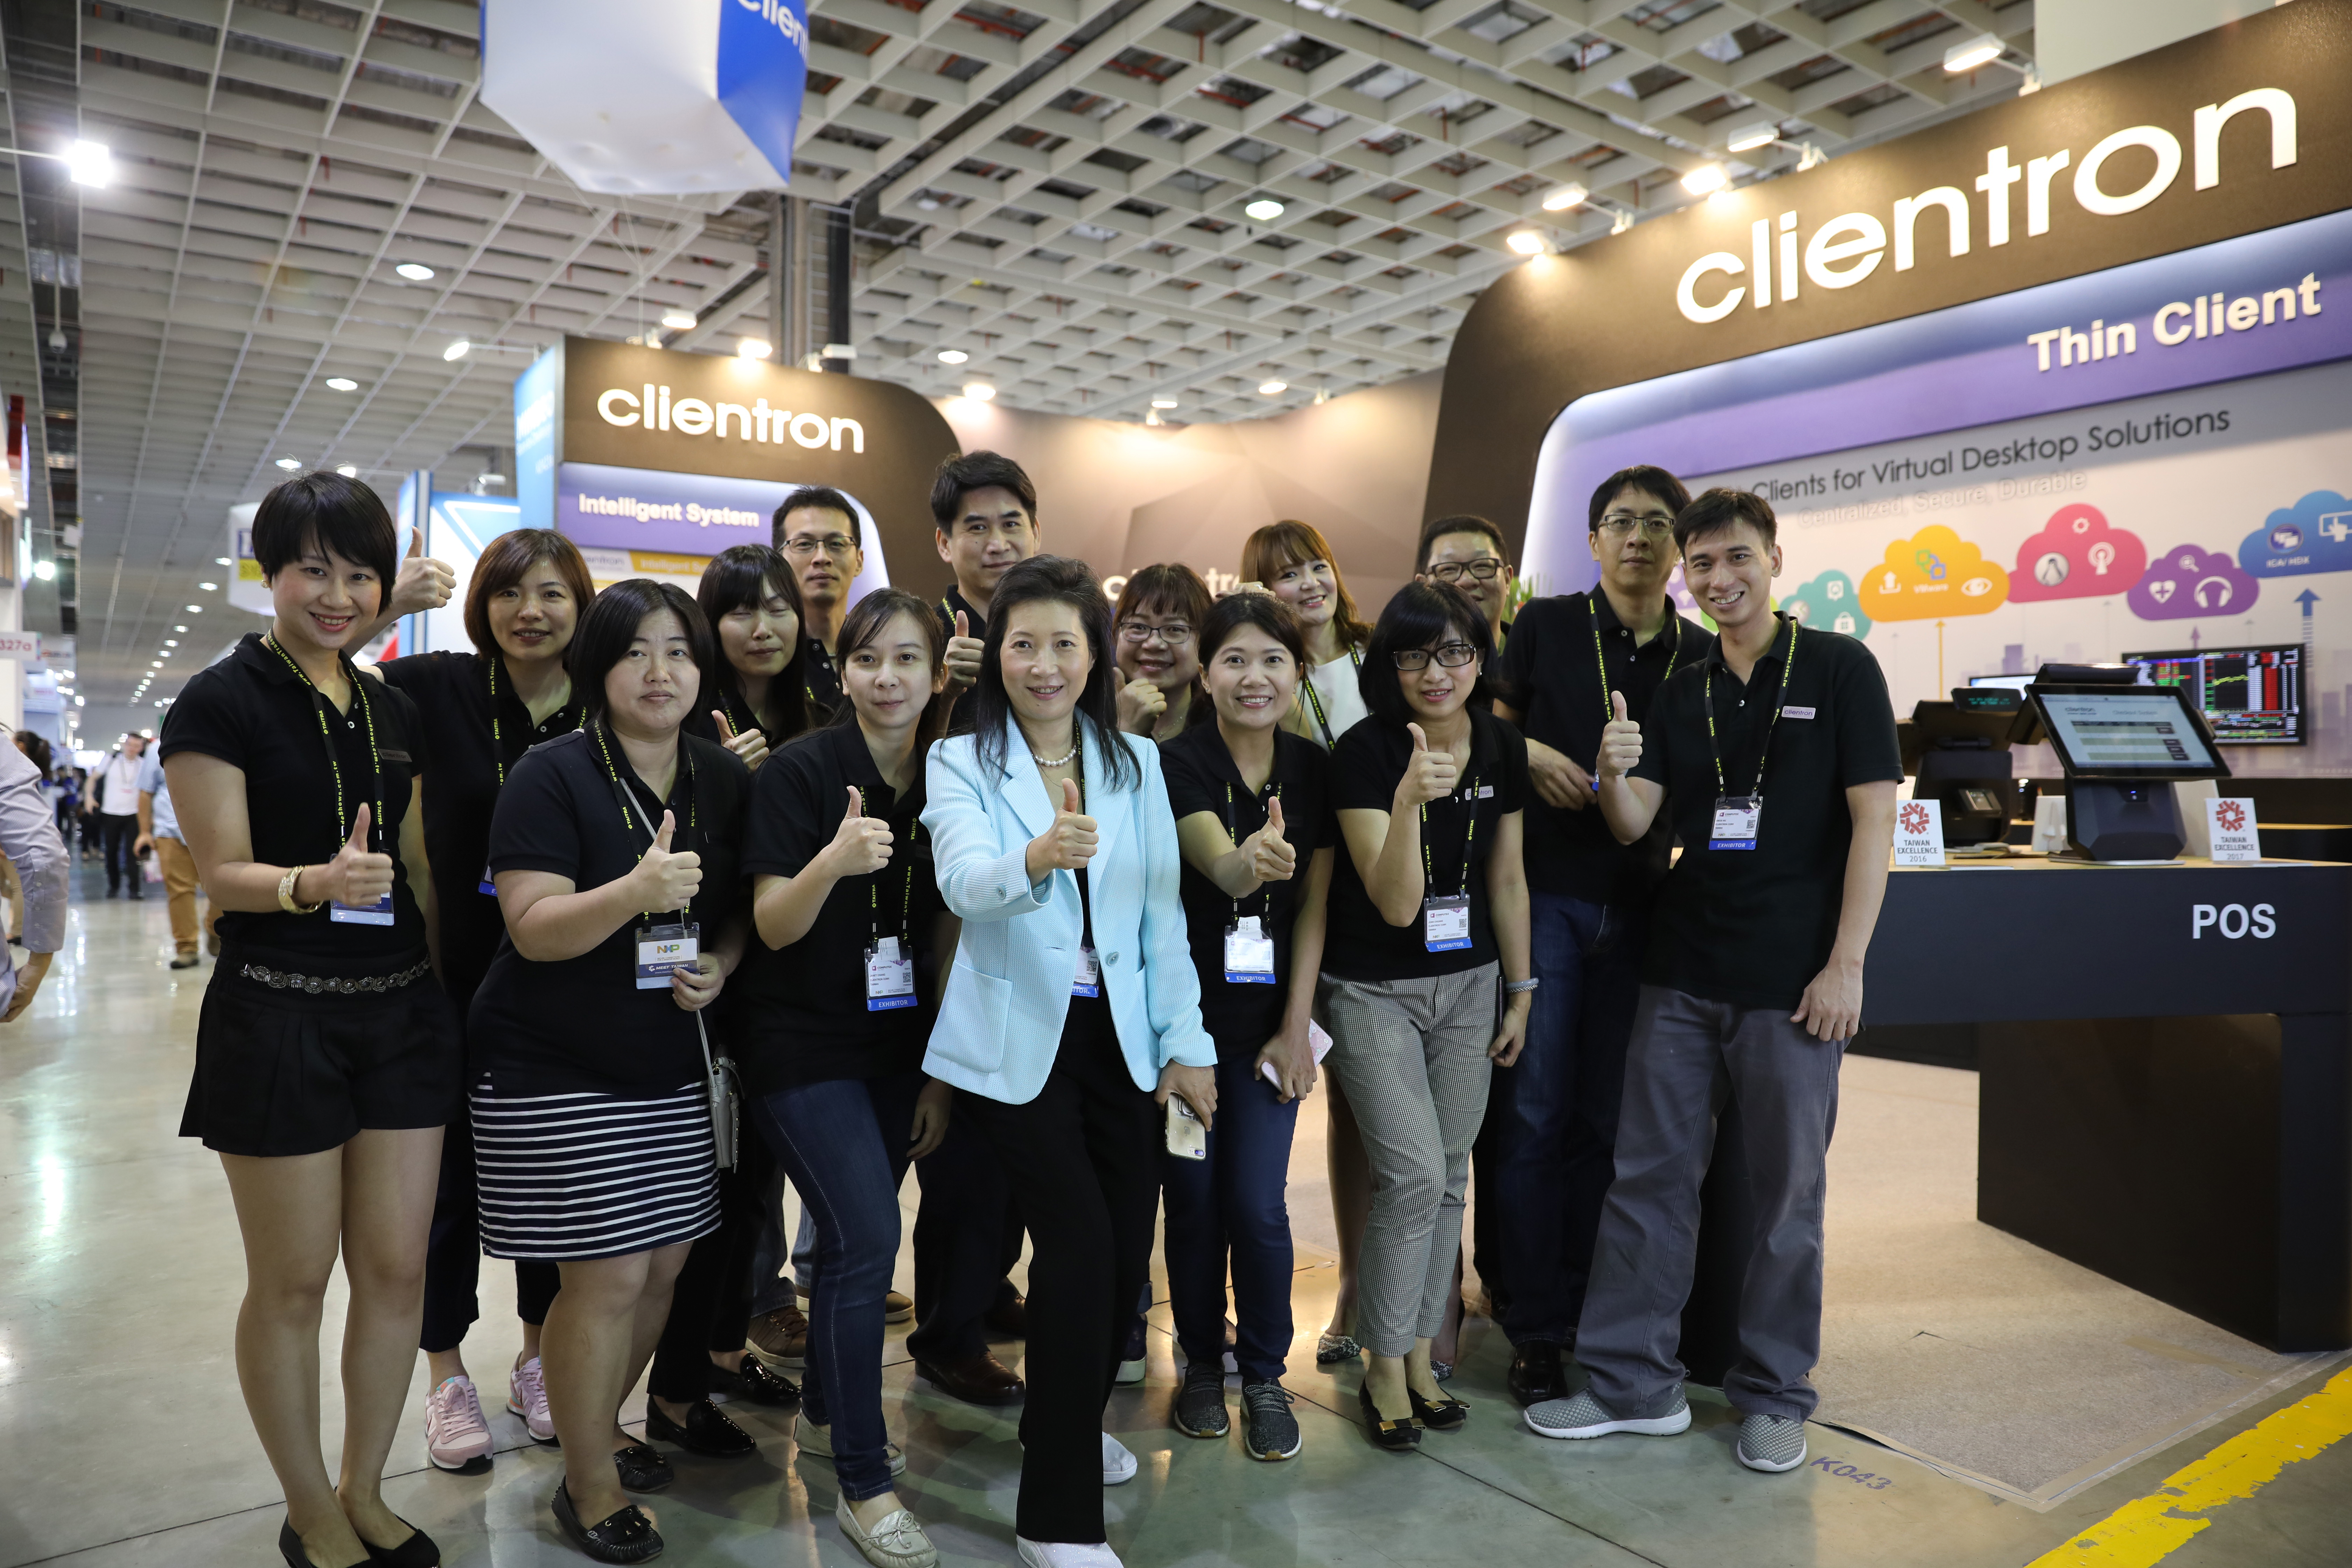 """""""Clientron presents its latest Thin Clients and POS solutions with multiple innovations at Computex 2017. Visitors can view the benefits of green technology, innovative design, and reliable quality that Clientron brings for your applications,"""" said Kelly Wu, CEO of Clientron. (Photo: Business Wire)"""